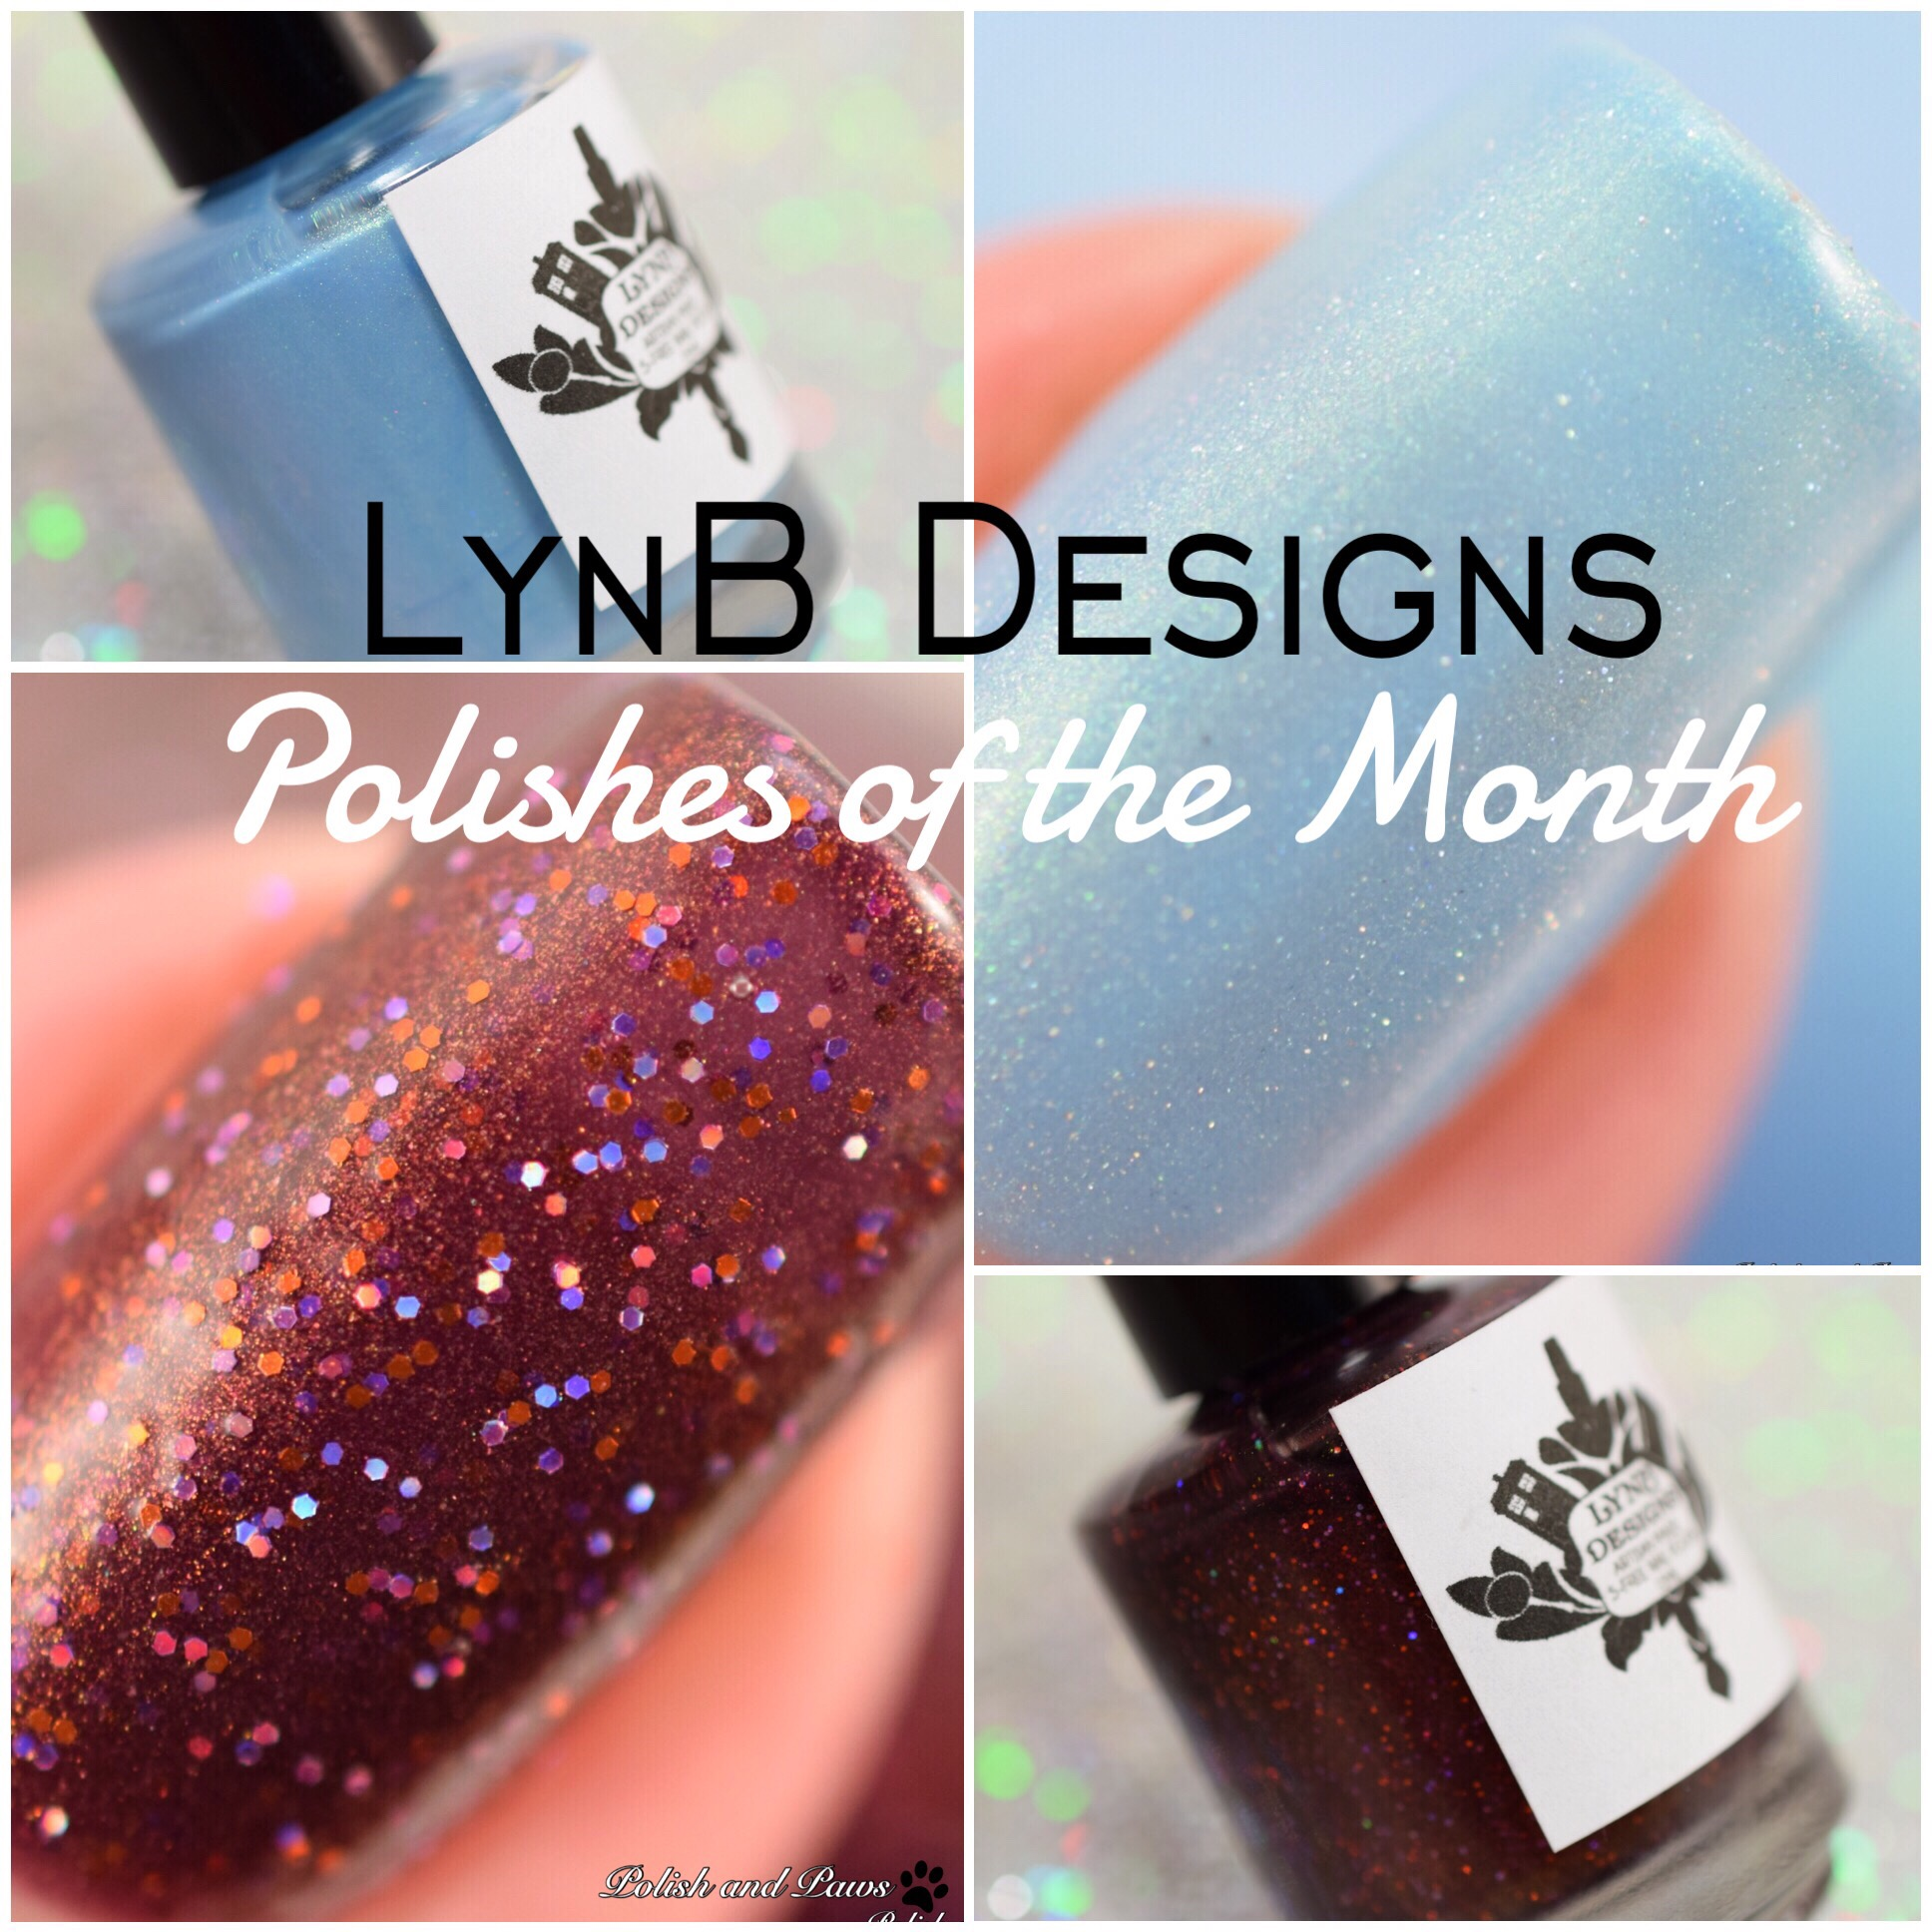 LynB Designs Polishes of the Month